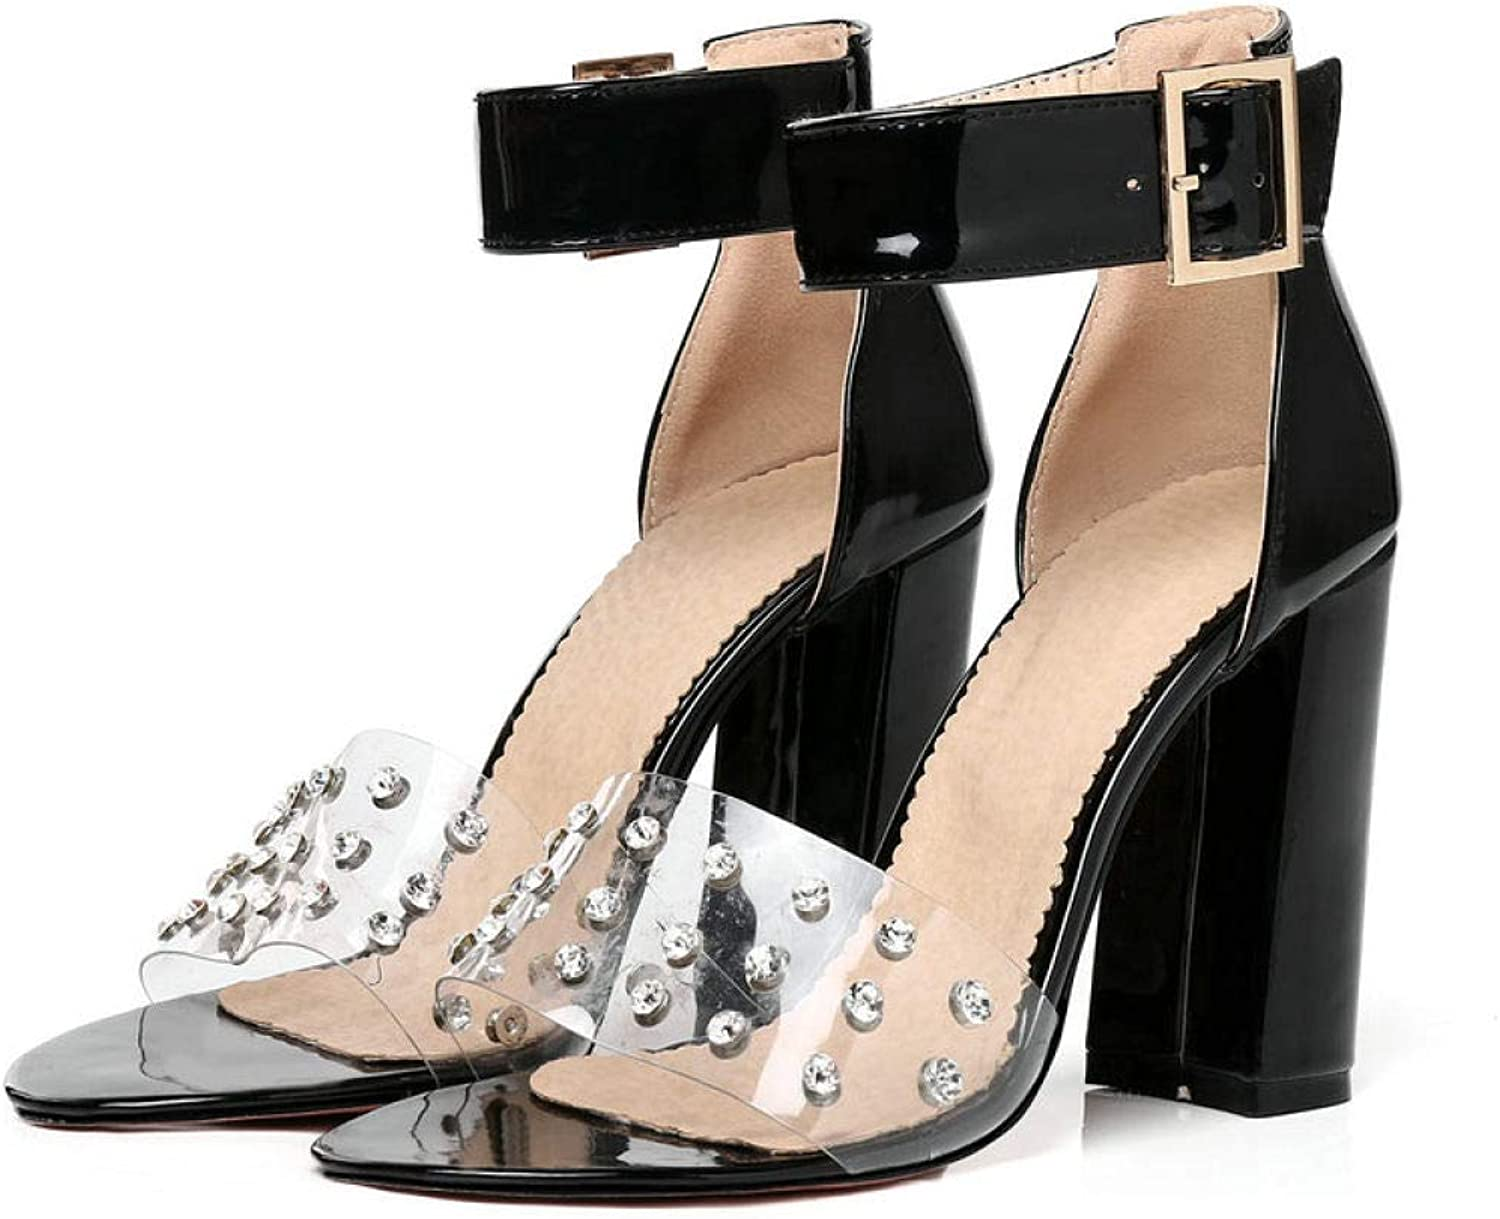 MEIZOKEN Women's Clear Strap High Chunky Heel Sandals Fashion Rhinestone Party shoes Ladies Ankle Buckle Strap Pumps Sandal